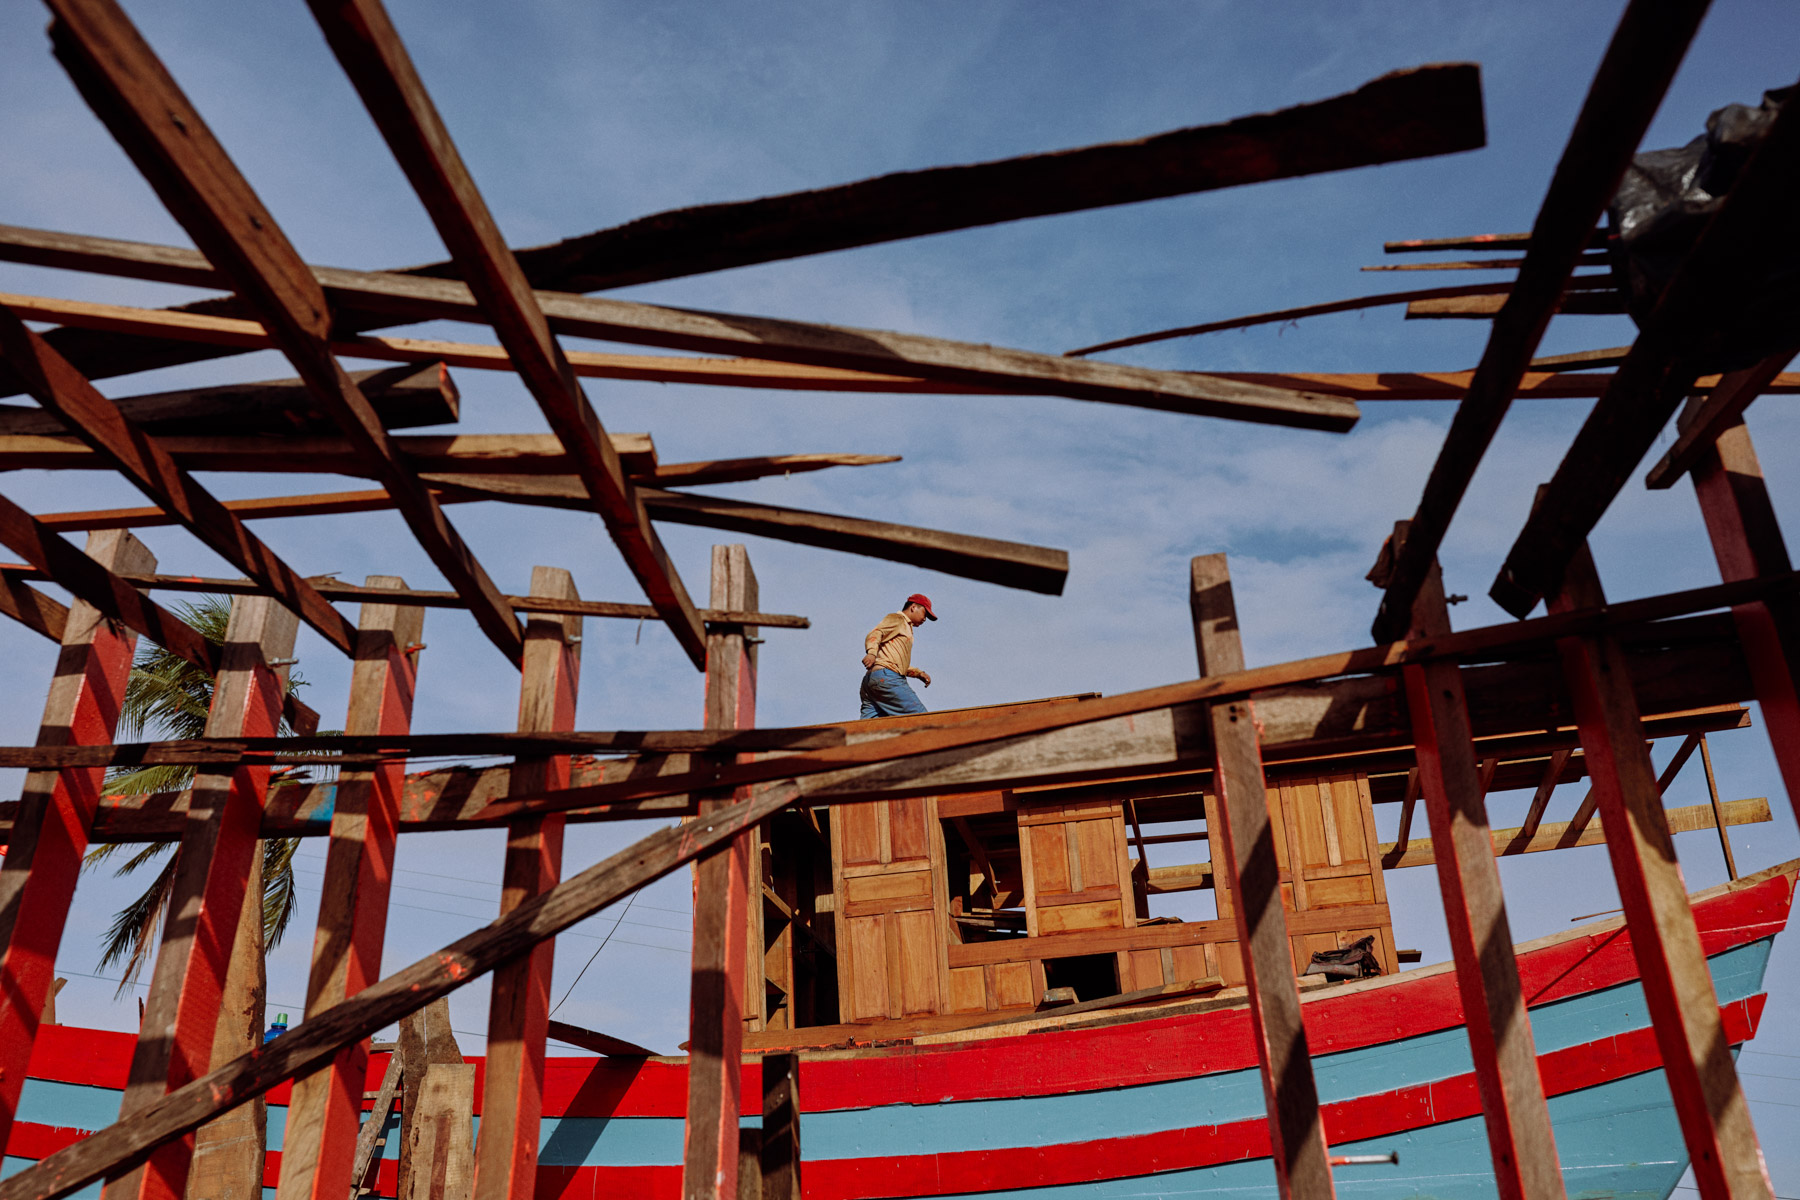 A man walks a plank at a boat construction yard in central Vietnam.